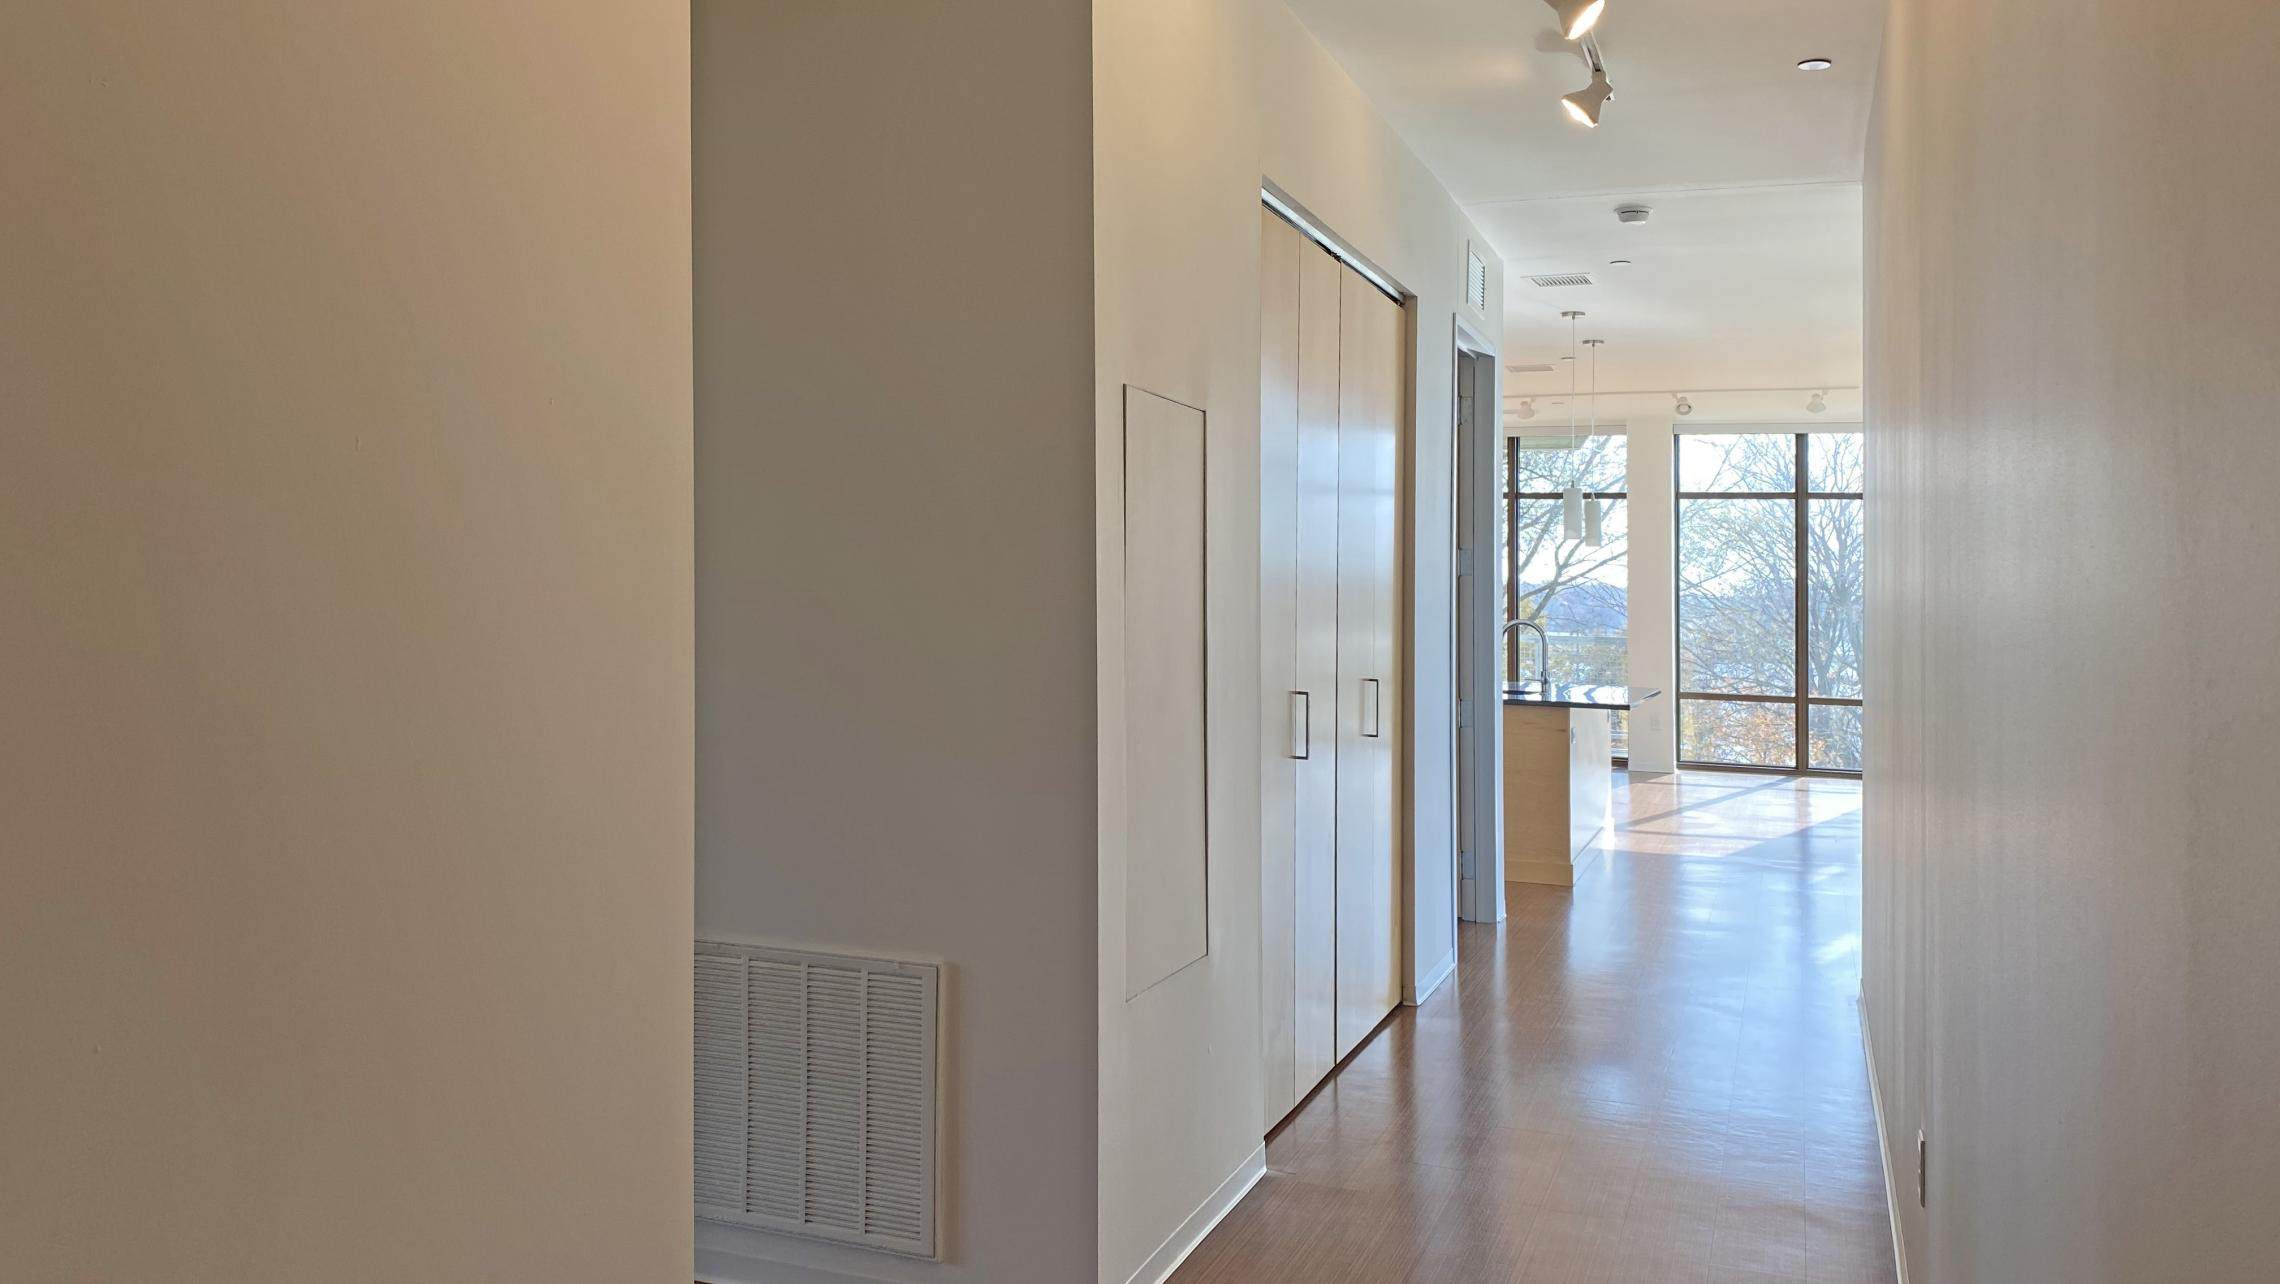 SEVEN27-The-Yards-Apartment-340-Two-Bedroom-Windows-Natural-Light-Stunning-Lake-View-Cats-Dogs-Balcony-Lounge-Modern-Upscale-Luxury-Kitchen-Bathroom-Design-Downtown-Madison